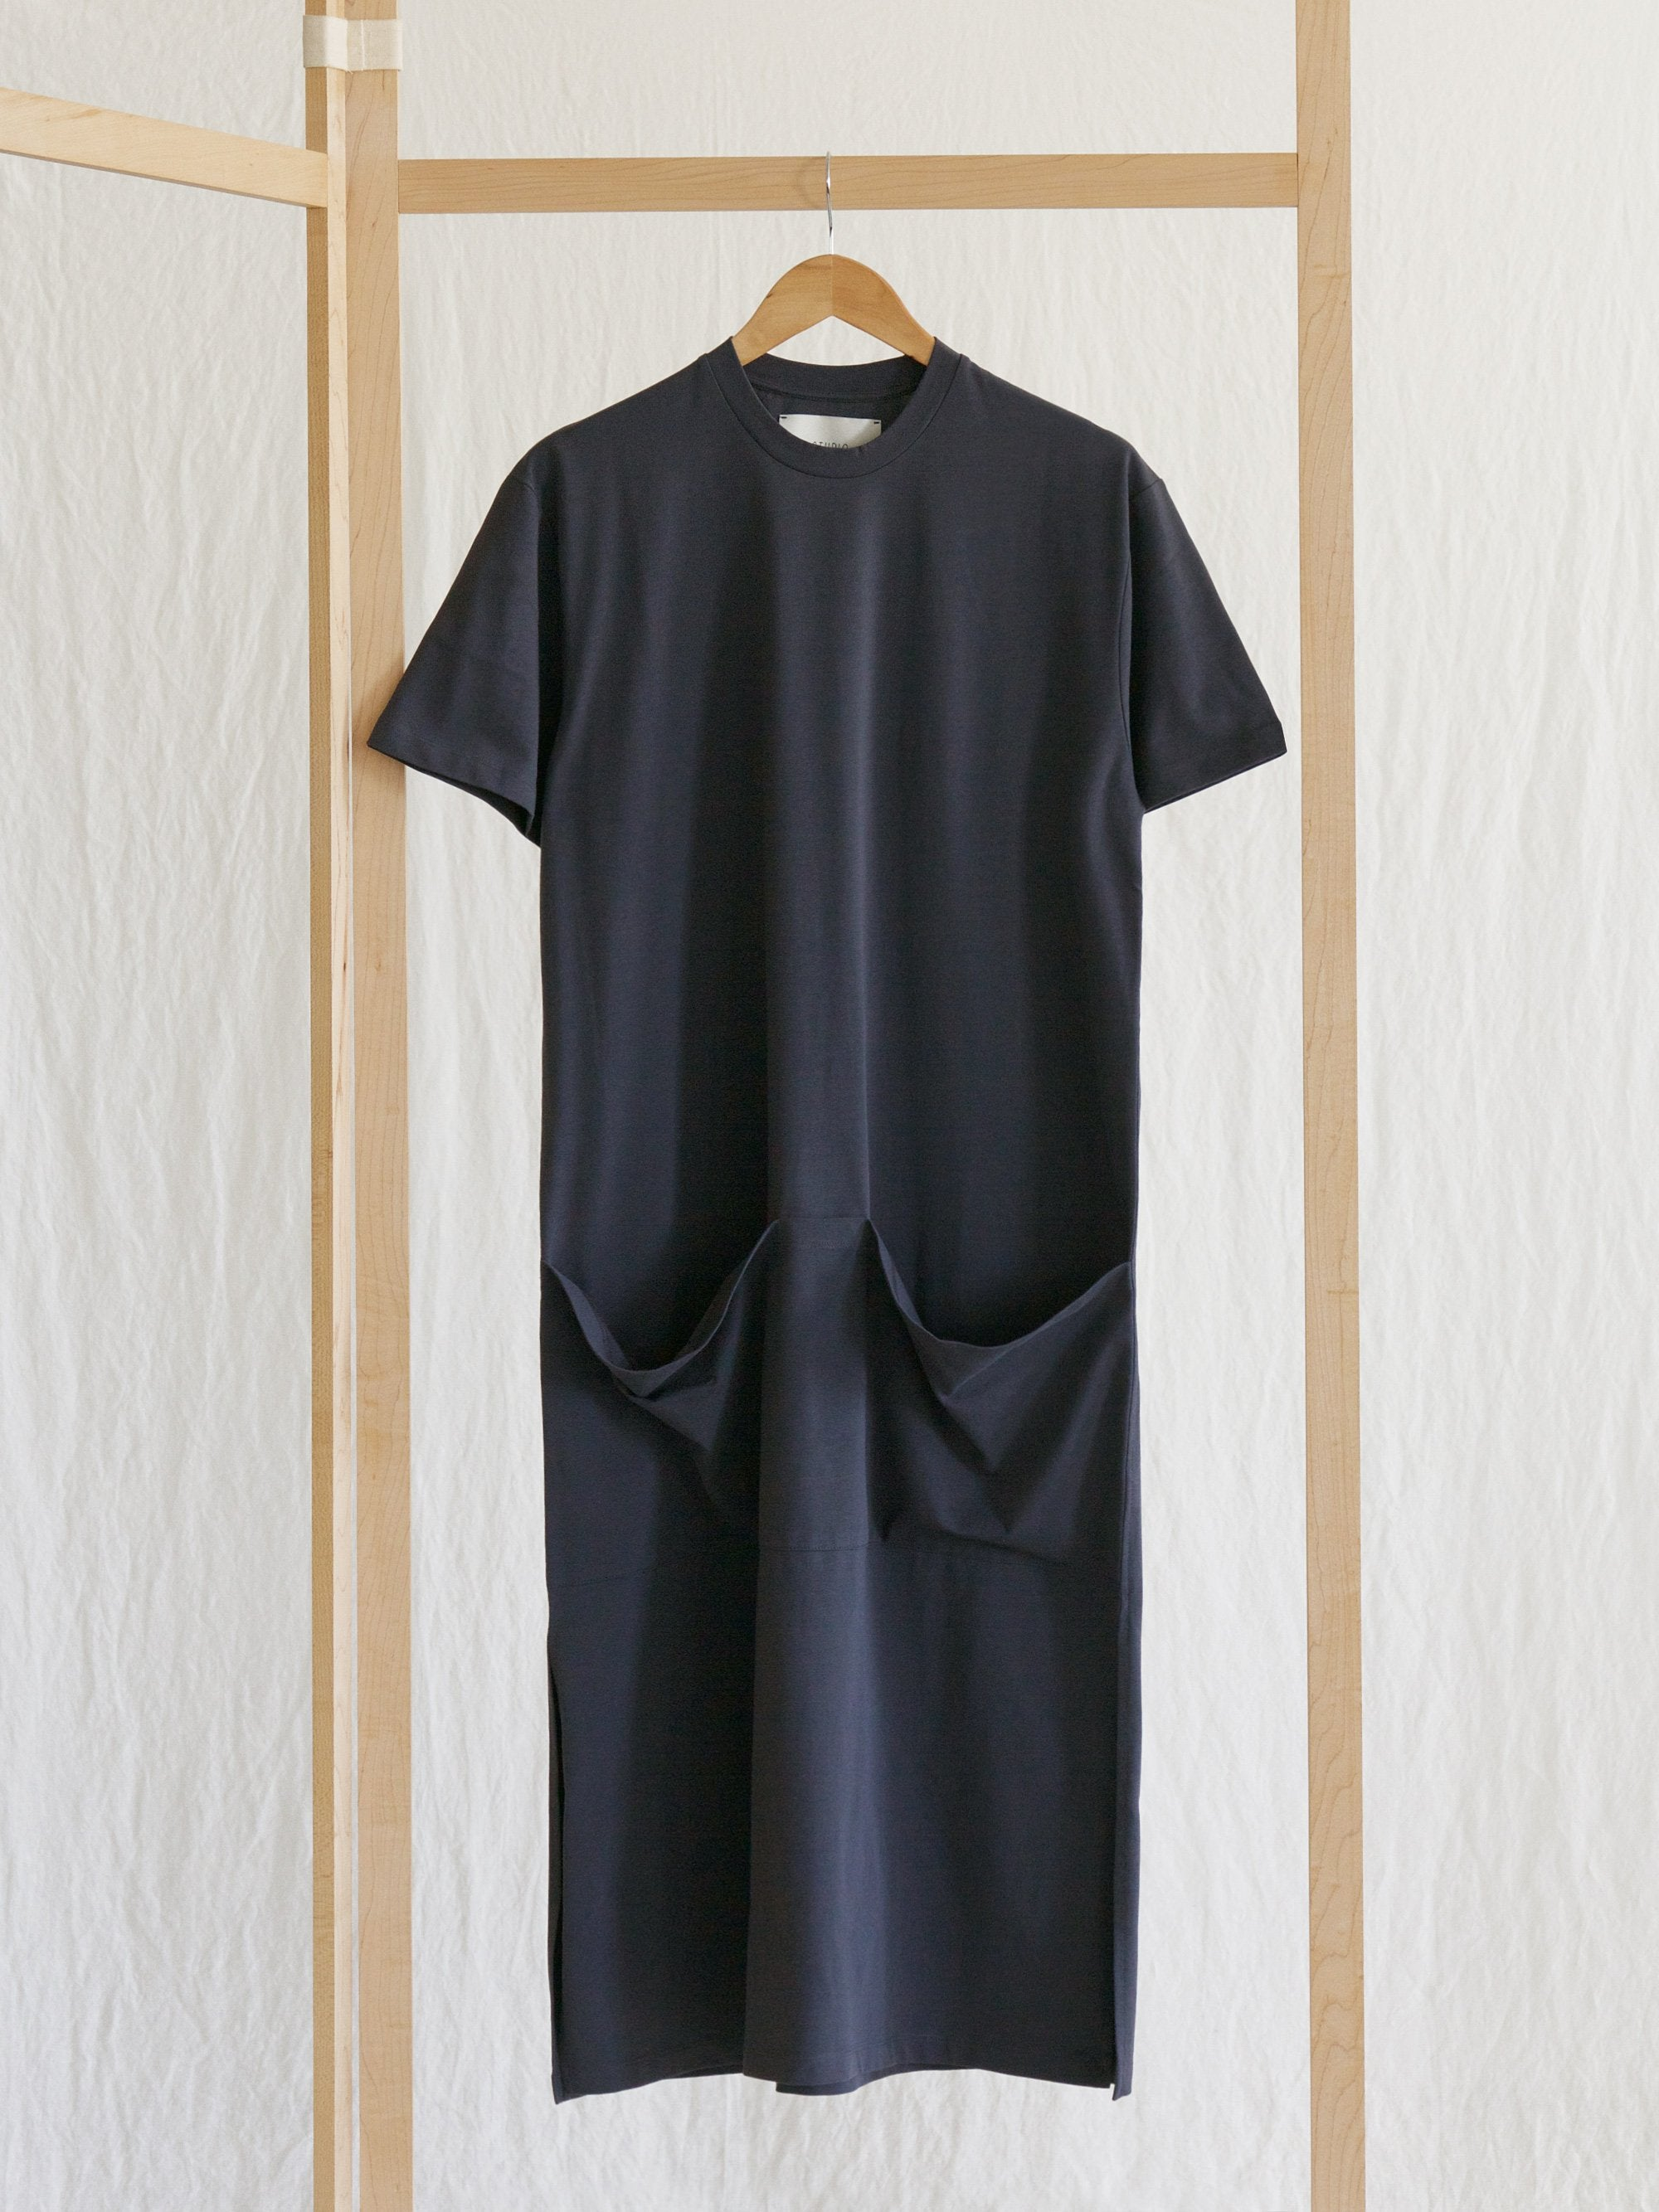 Namu Shop - Studio Nicholson Boyd Mercerized Cotton Jersey Dress